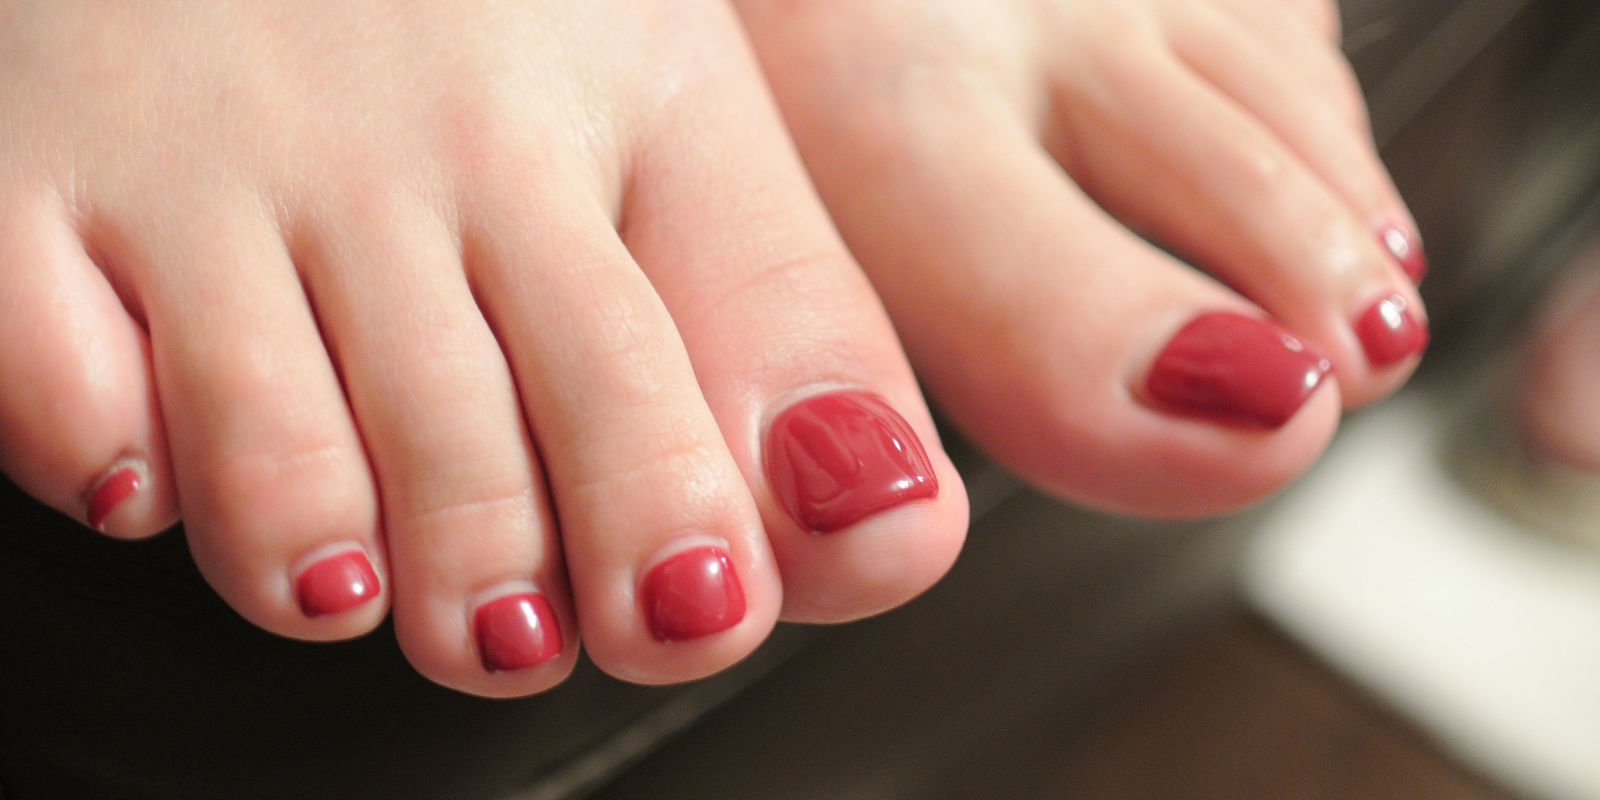 landscape-1445728204-g-fungal-nail-infection-463752679.jpg